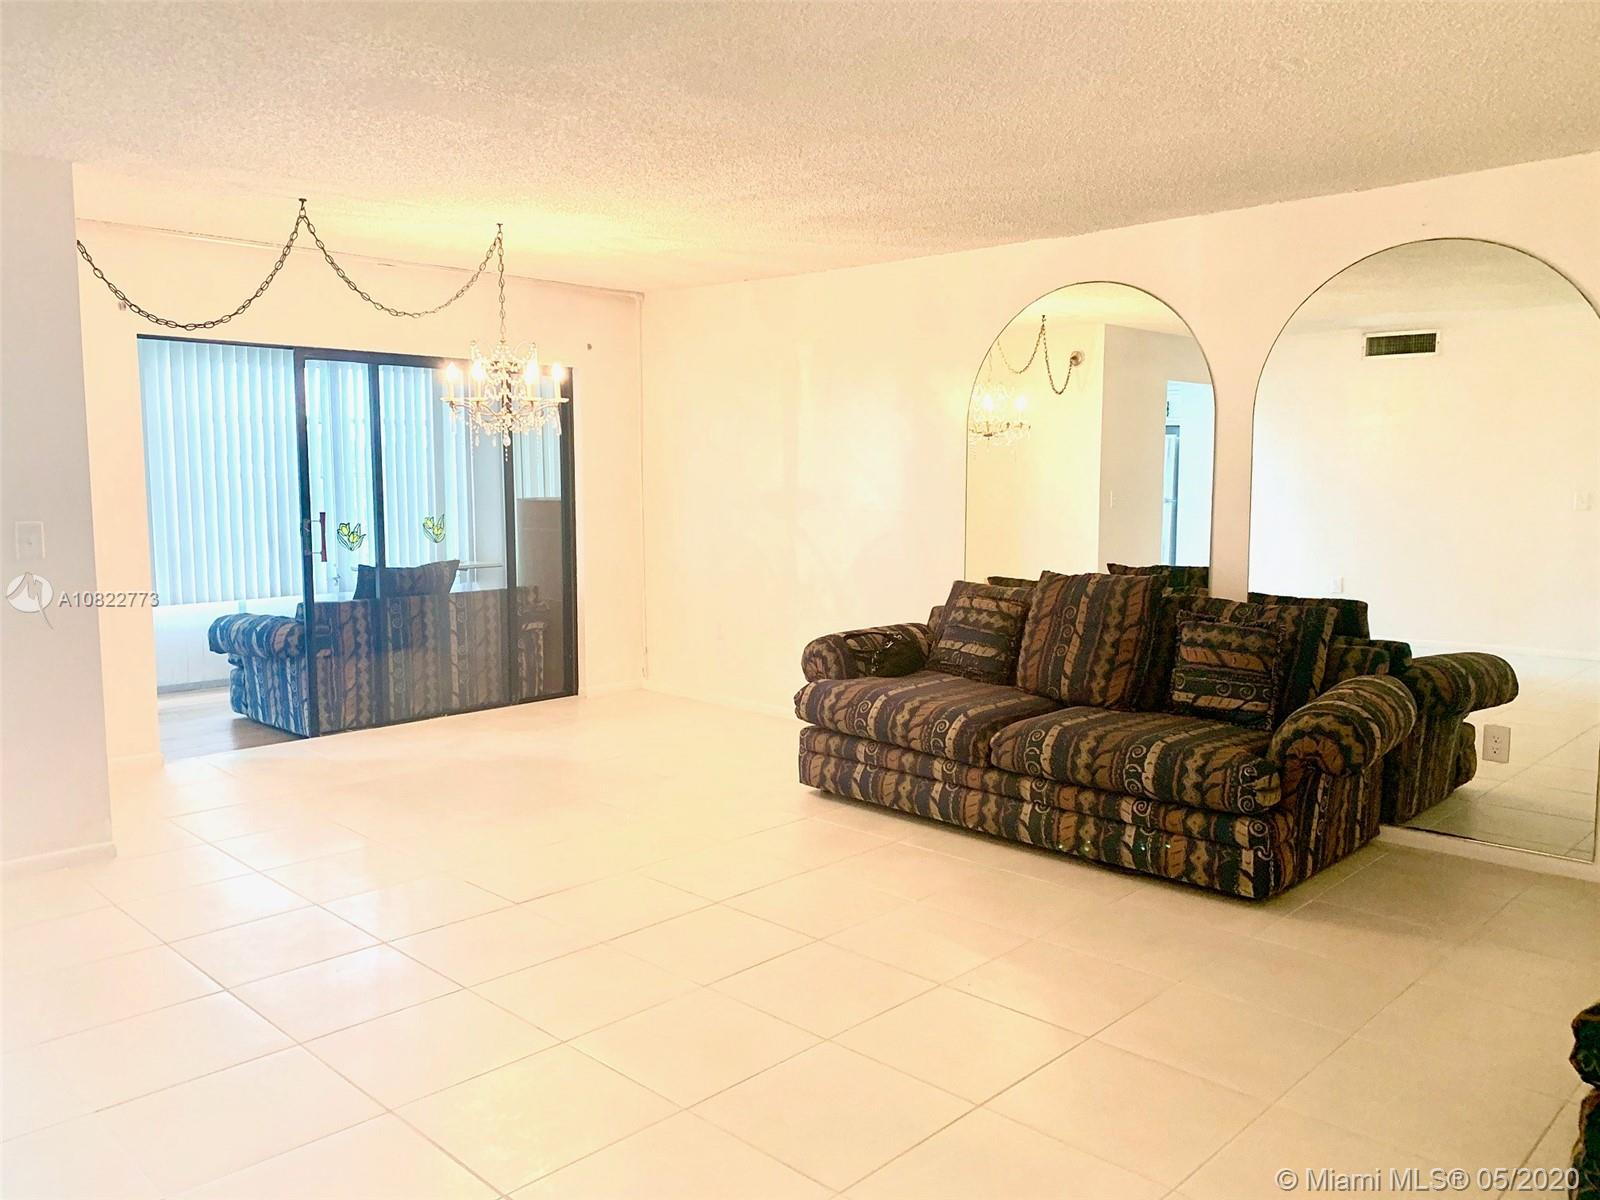 2551 NW 41st Ave #310 For Sale A10822773, FL